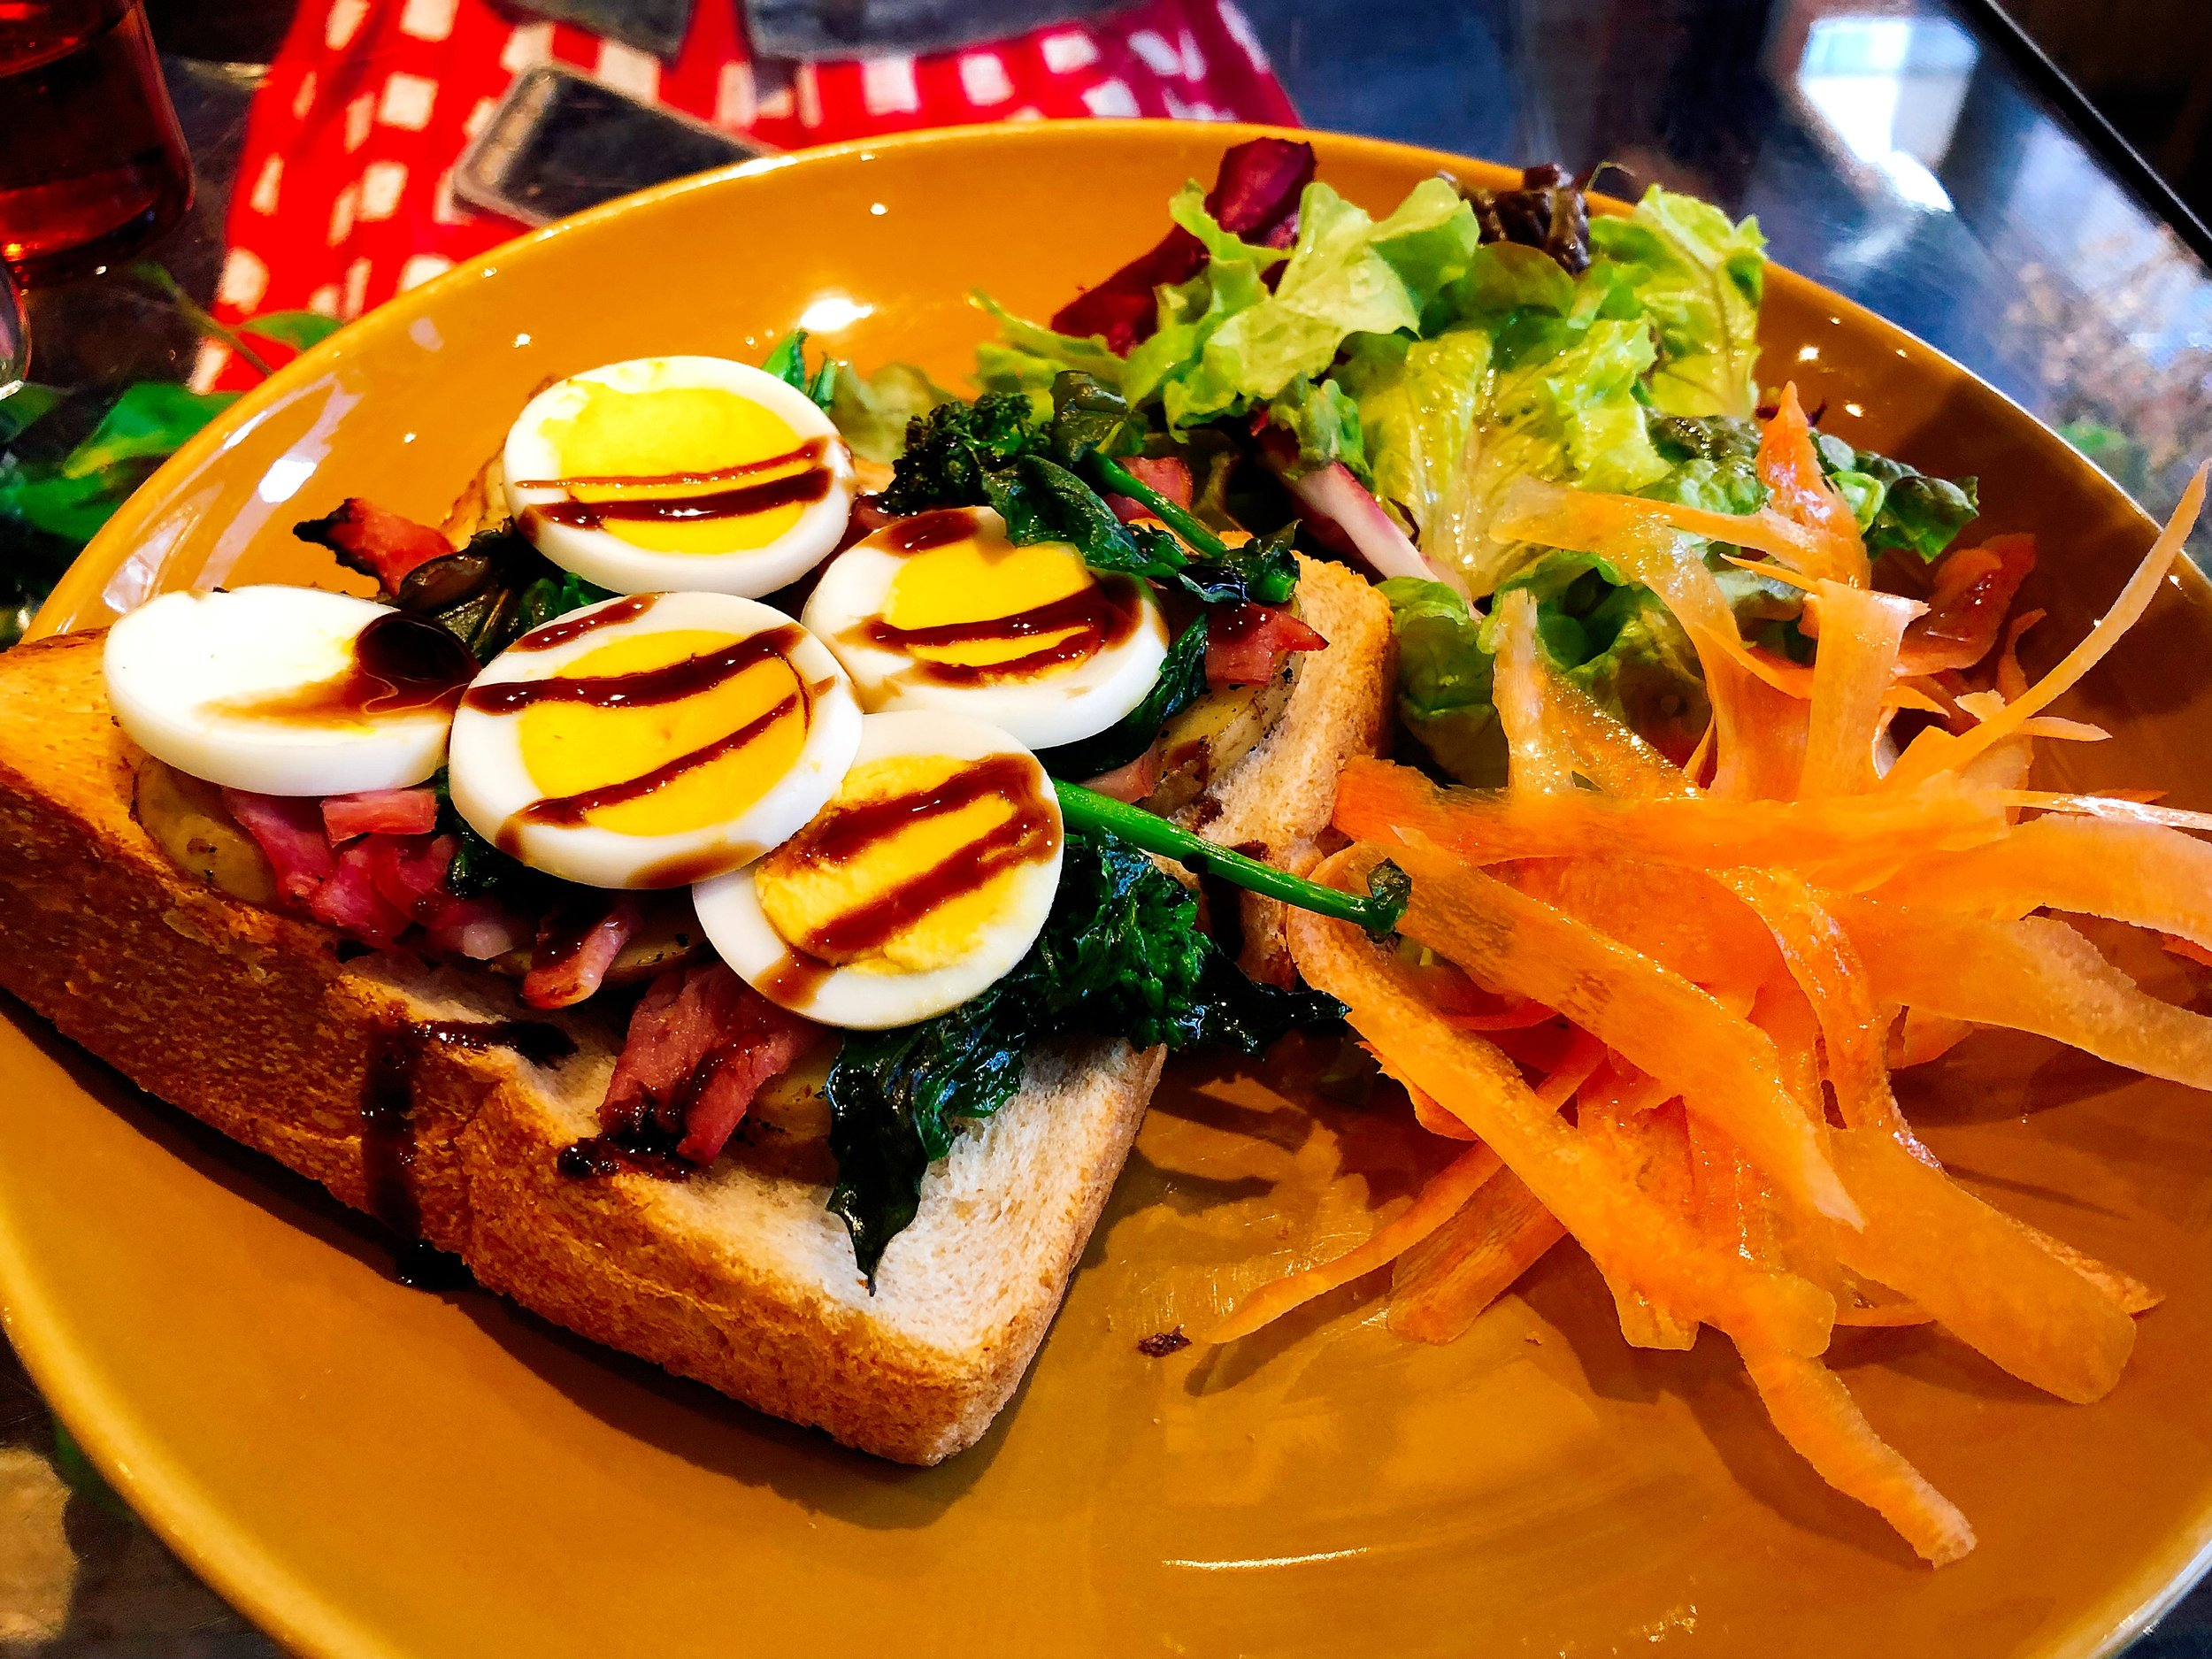 Toast Topped With Ham, Egg Broccolini And A Drizzle Of Balsamic Vinegar